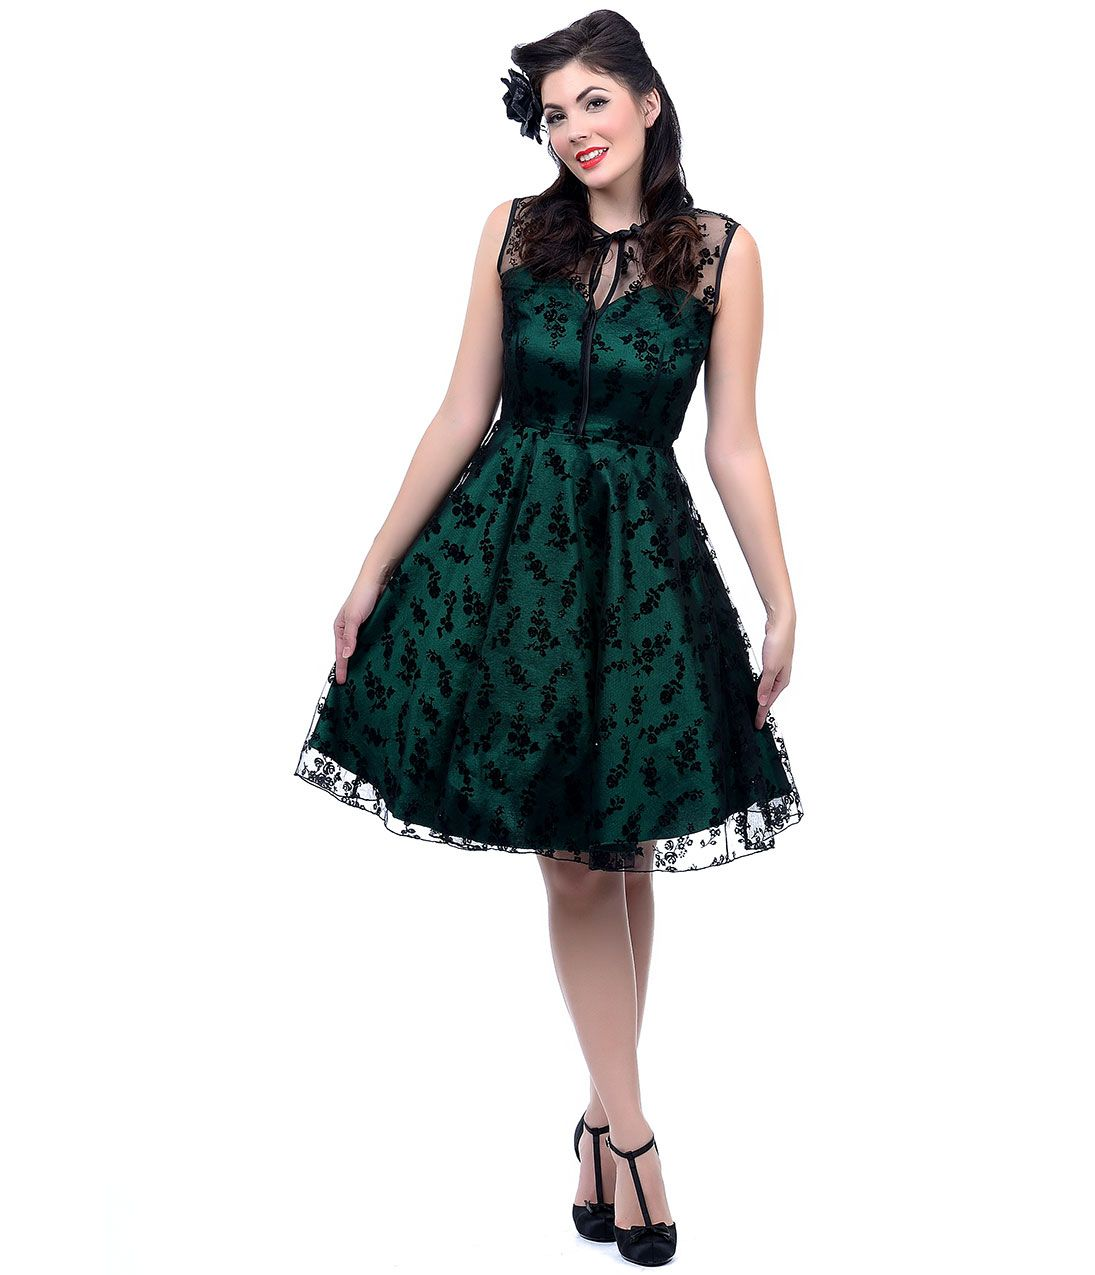 Vintage cocktail dresses party dresses prom dresses lace overlay green holiday party dress green floral flocked lace overlay cocktail dress 7400 ombrellifo Gallery